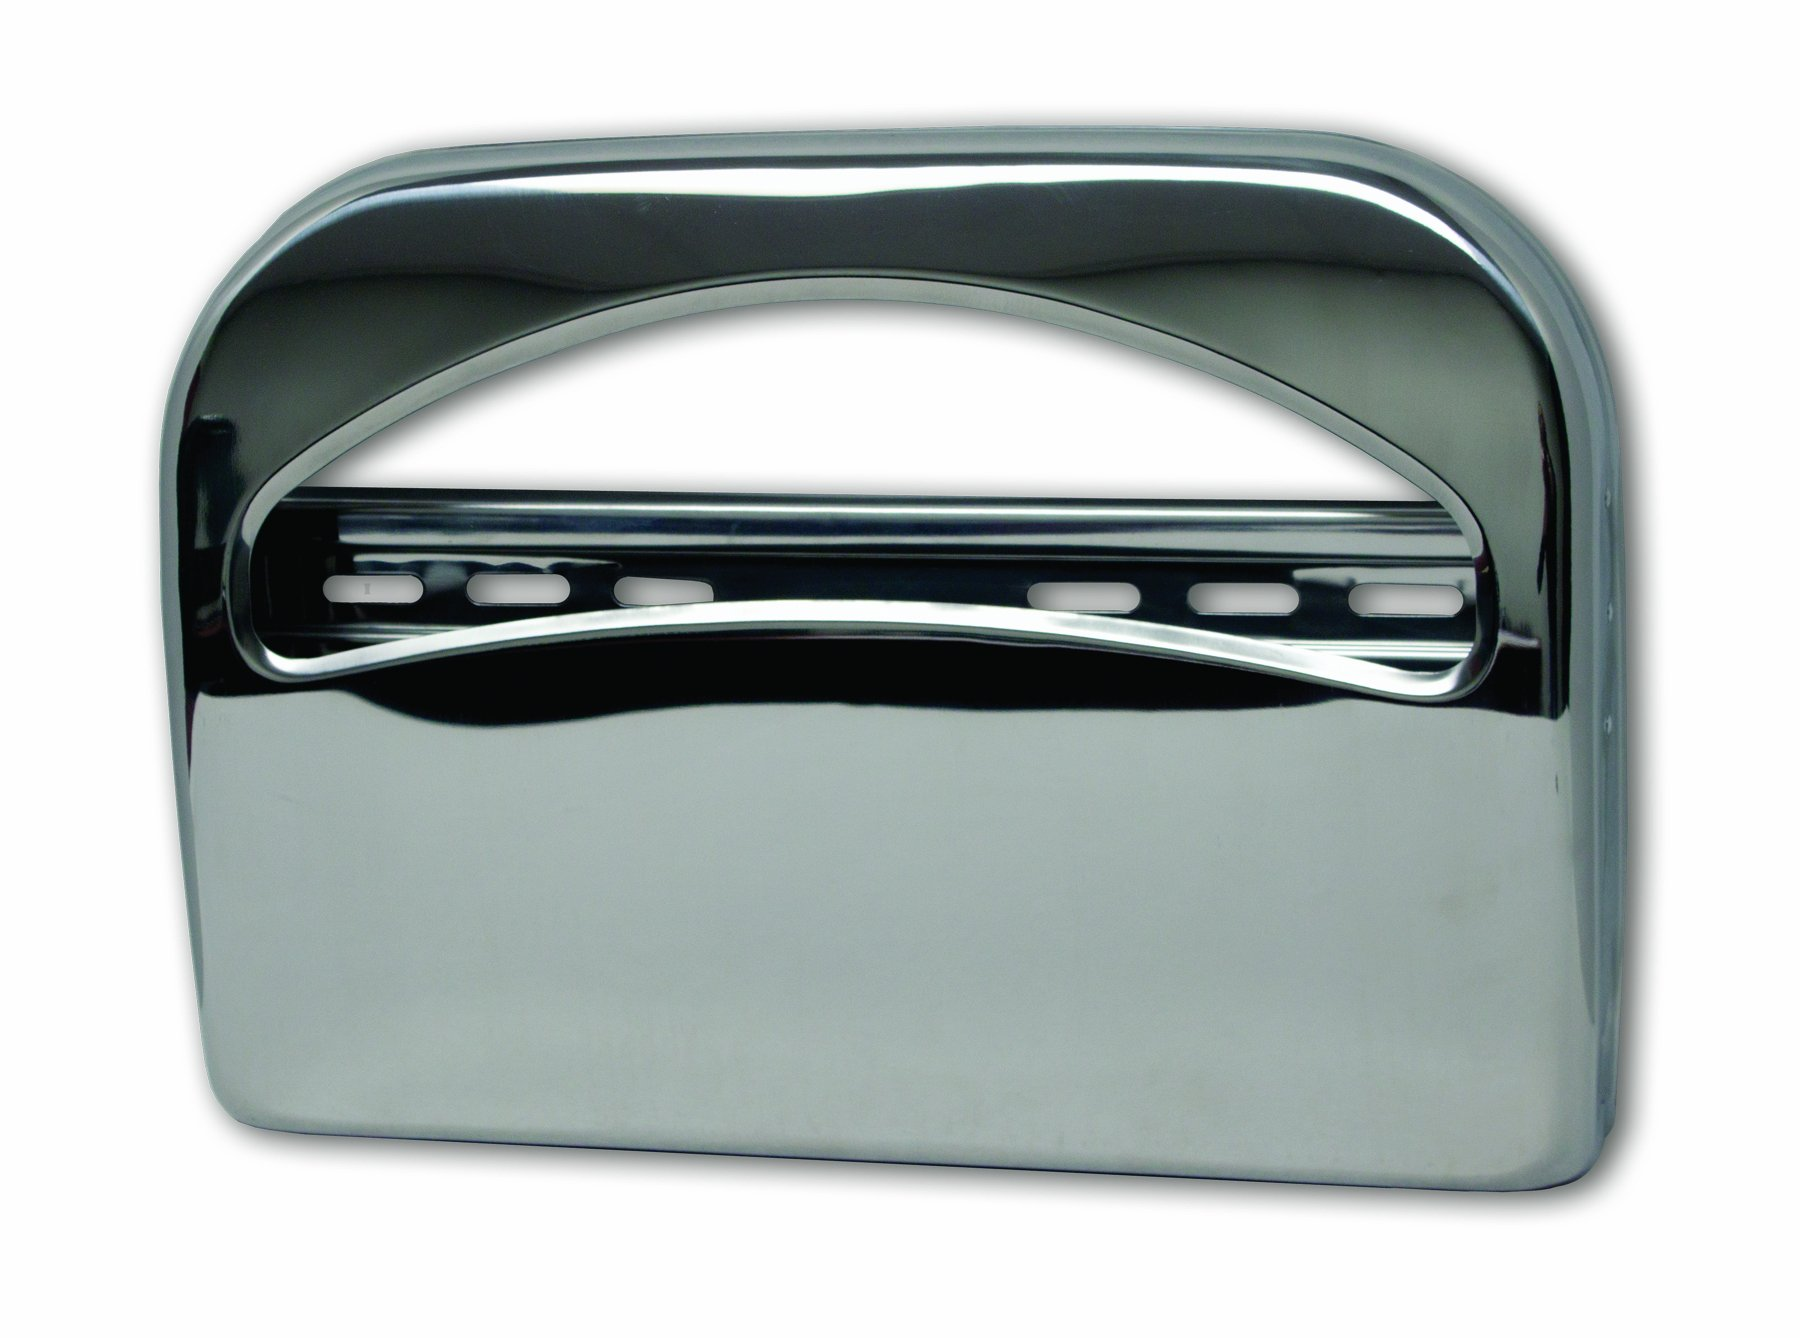 Palmer Fixture TS0142-11 1/2 Fold Toilet Seat Cover Dispenser, Brushed Chrome